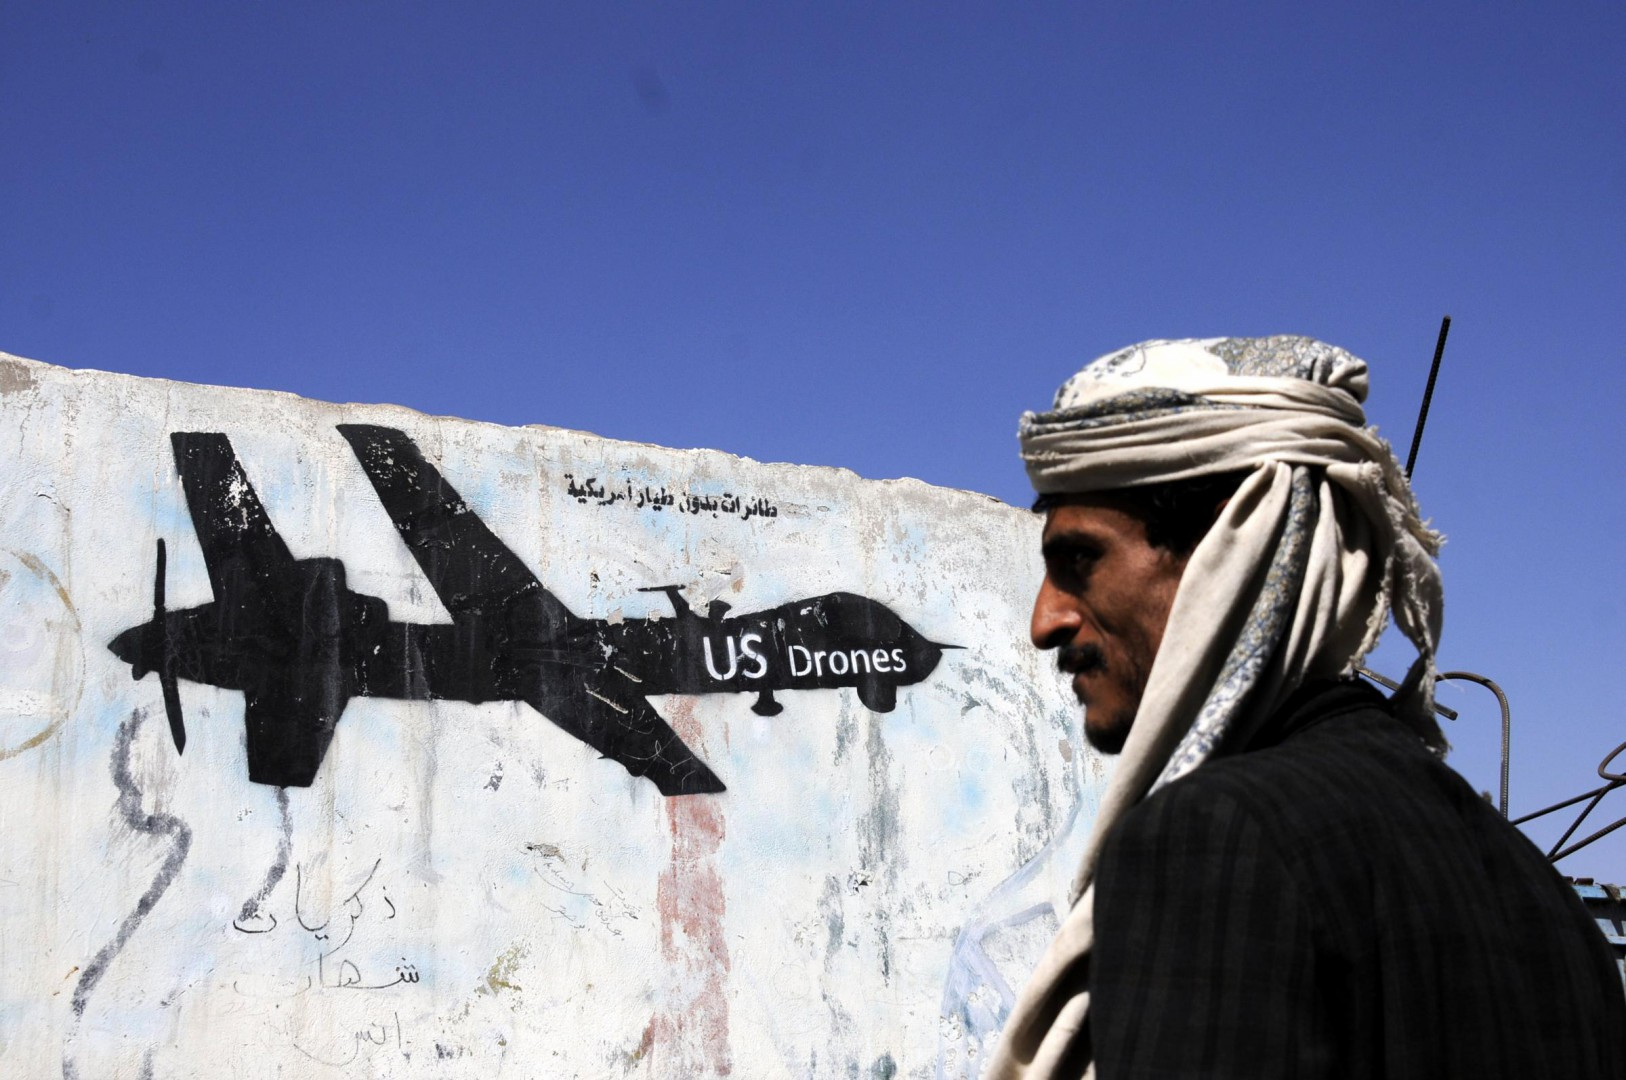 (170130) -- SANNA , Jan. 30, 2017 (Xinhua) -- A Yemeni man walks near a painting of US drone on the wall in Sanaa, Yemen, on Jan. 29, 2017. At least 25 civilians were killed in the latest U.S. counter-terror raid in Yemen on Sunday, tribal and local sources in Baida province told Xinuha.  (Xinhua/Mohammed Mohammed)